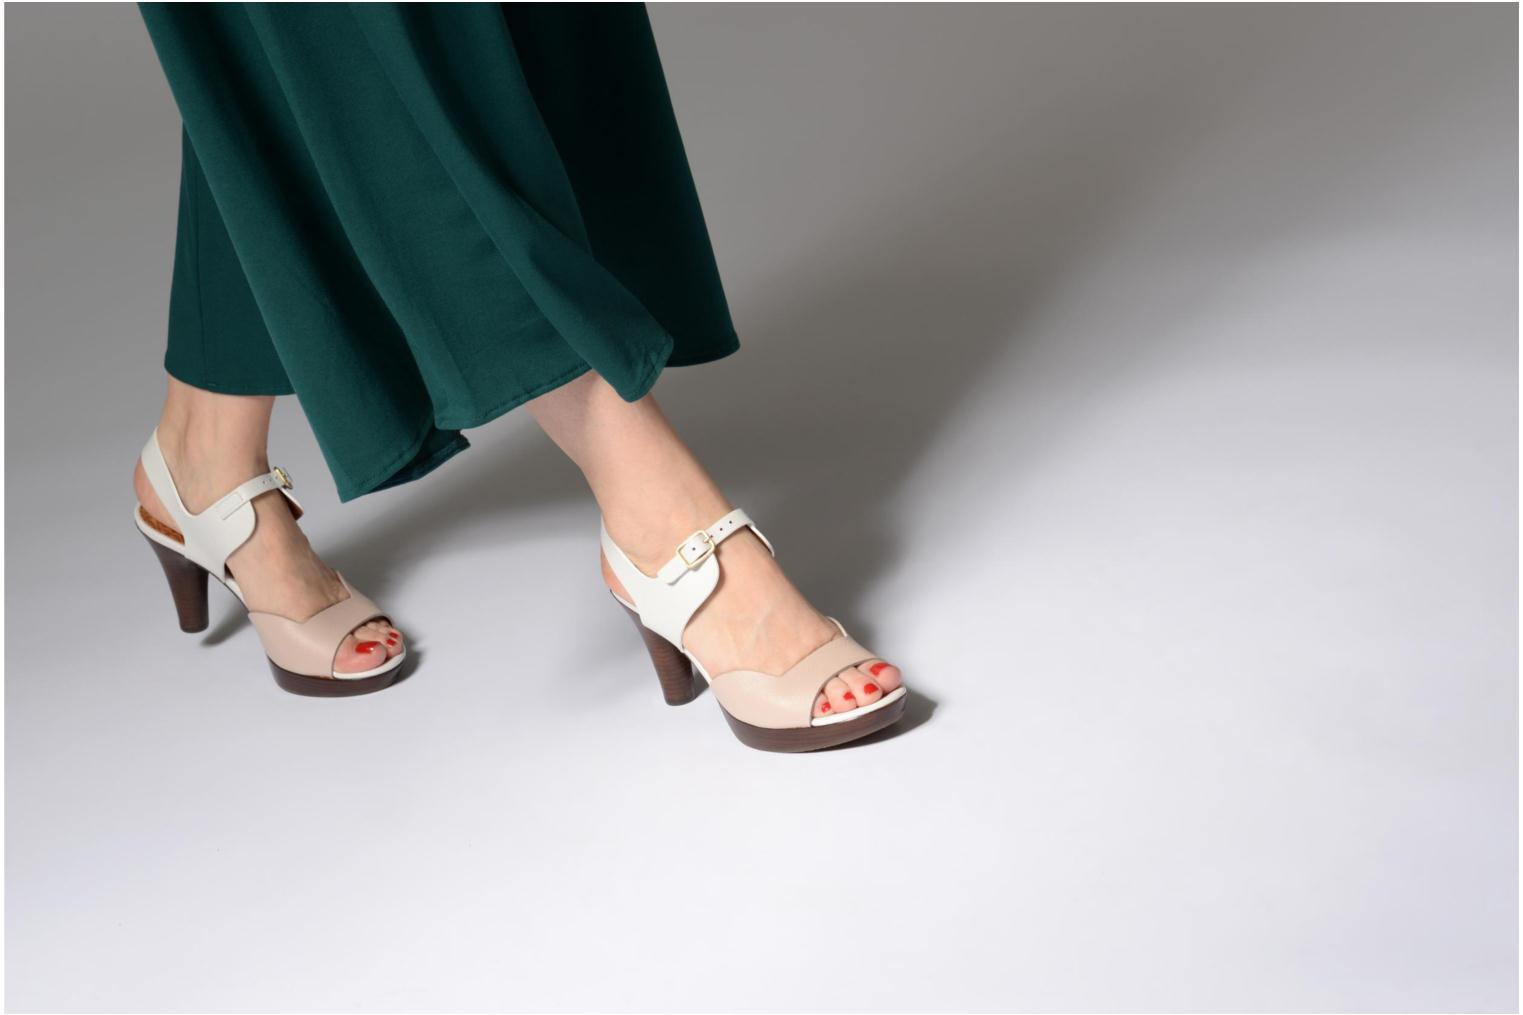 Sandals Chie Mihara Loteria32 Beige view from underneath / model view